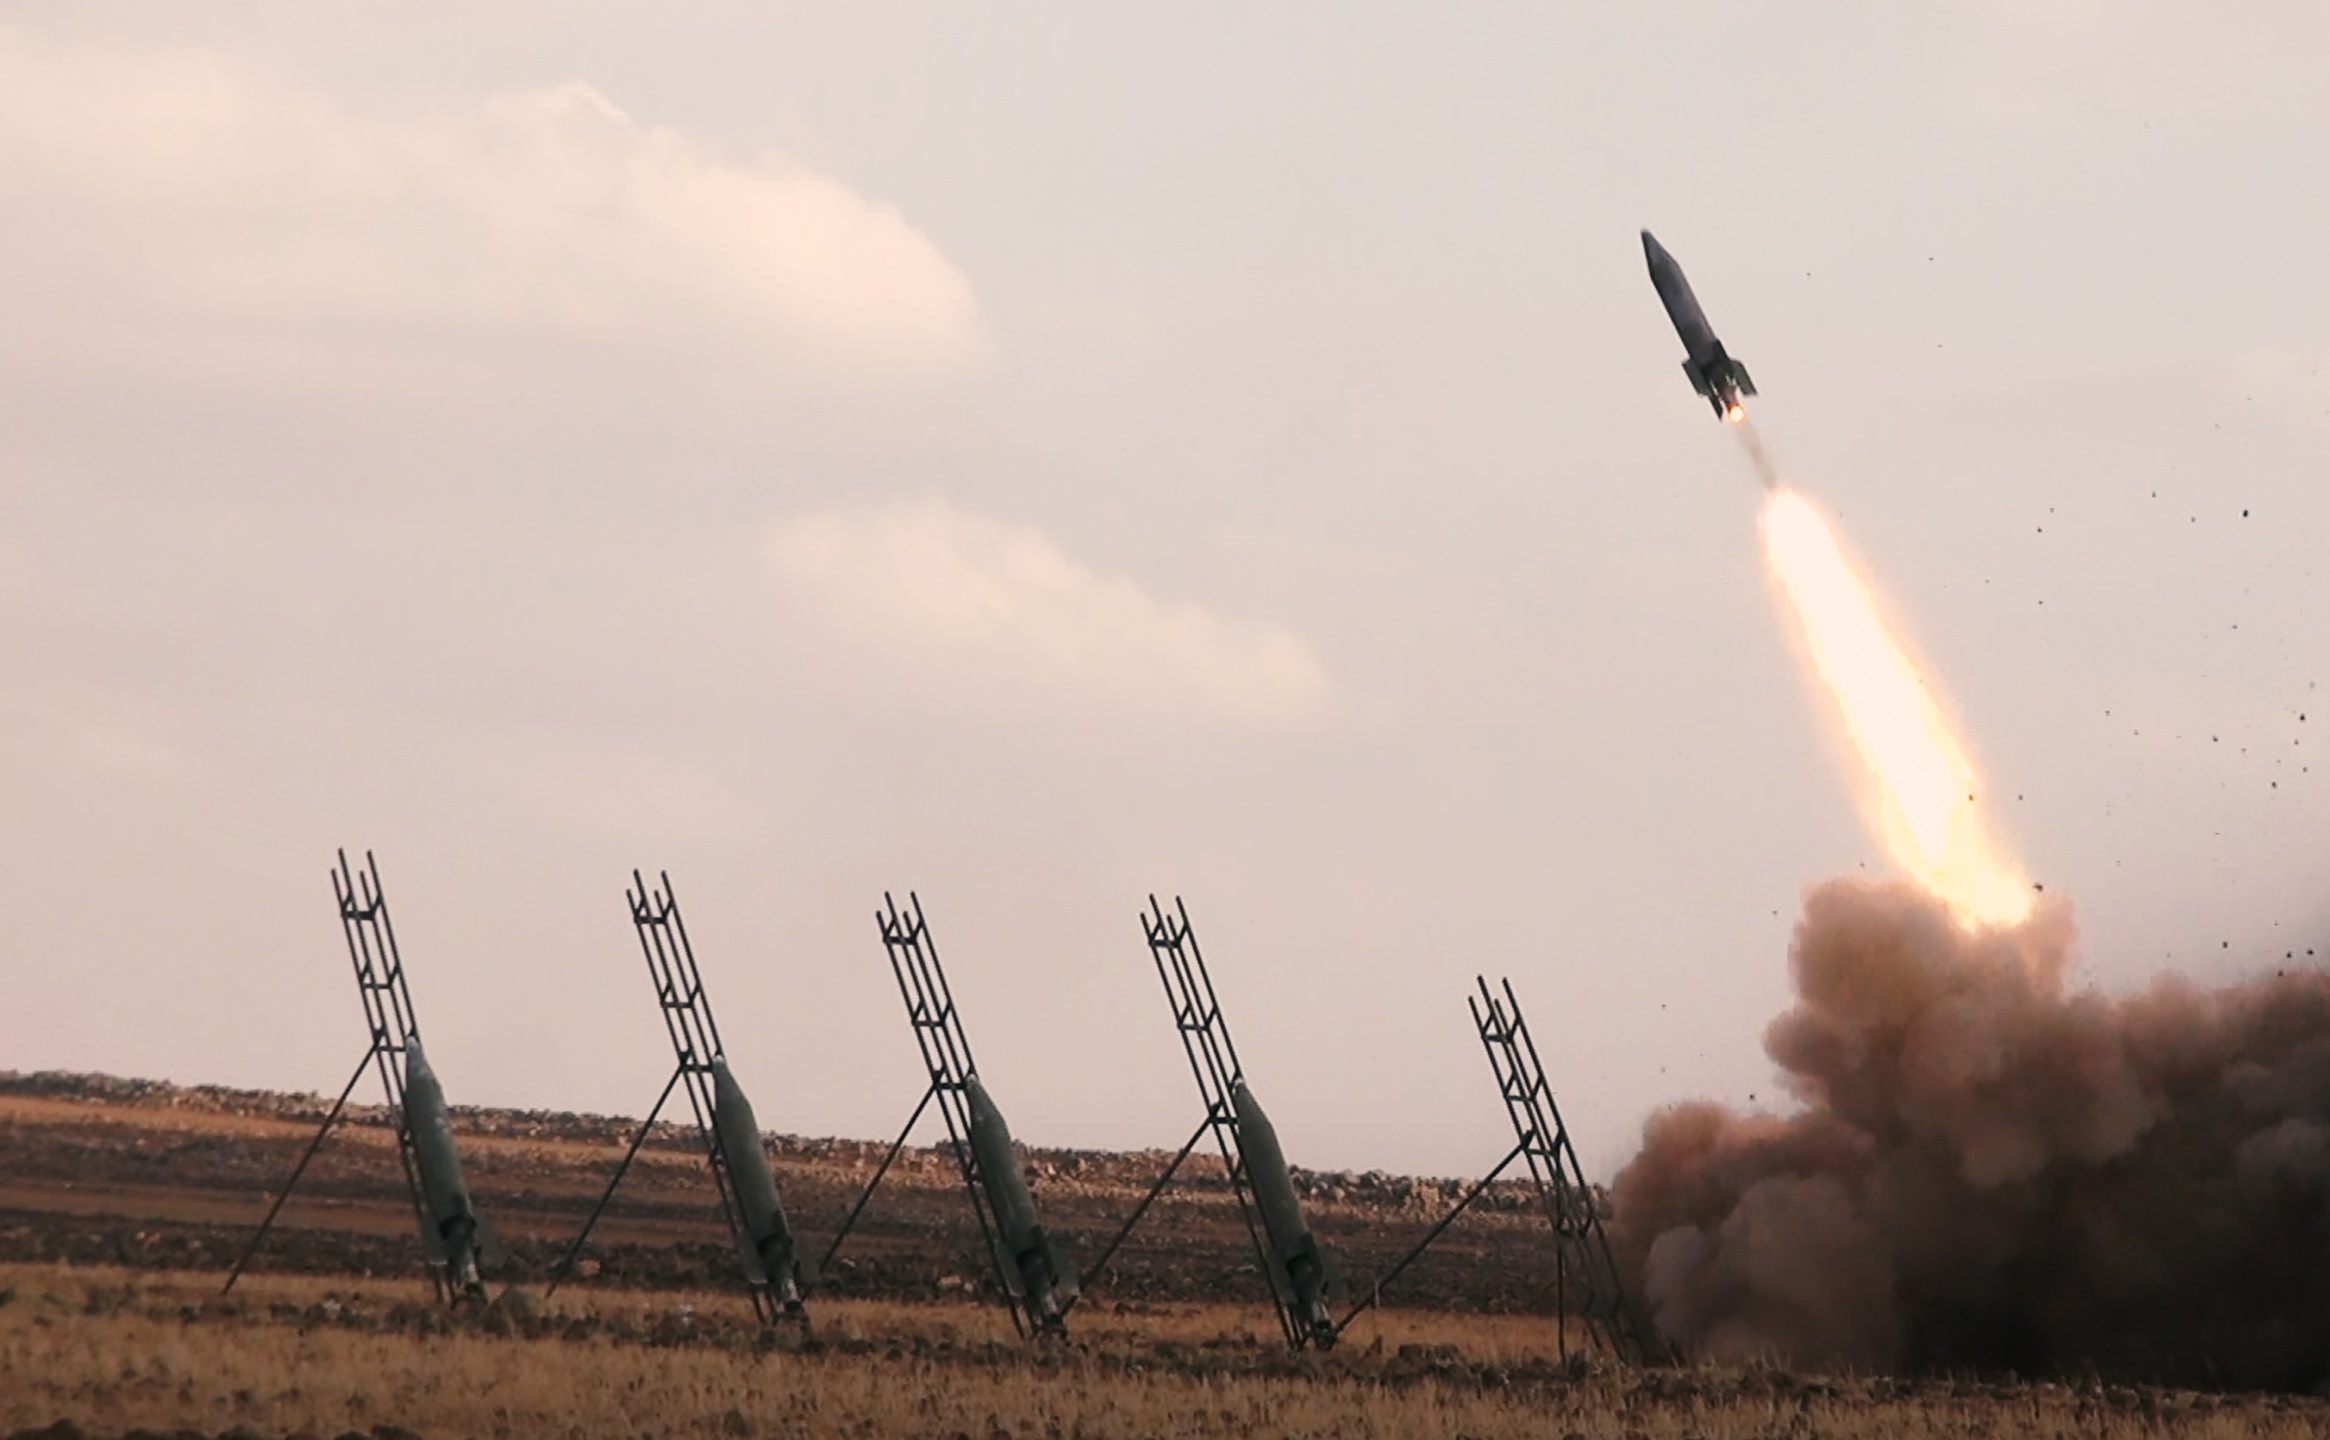 Syrian Army Destroys Militant Rocket Launchers In Response To Attack On Assad's Hometown